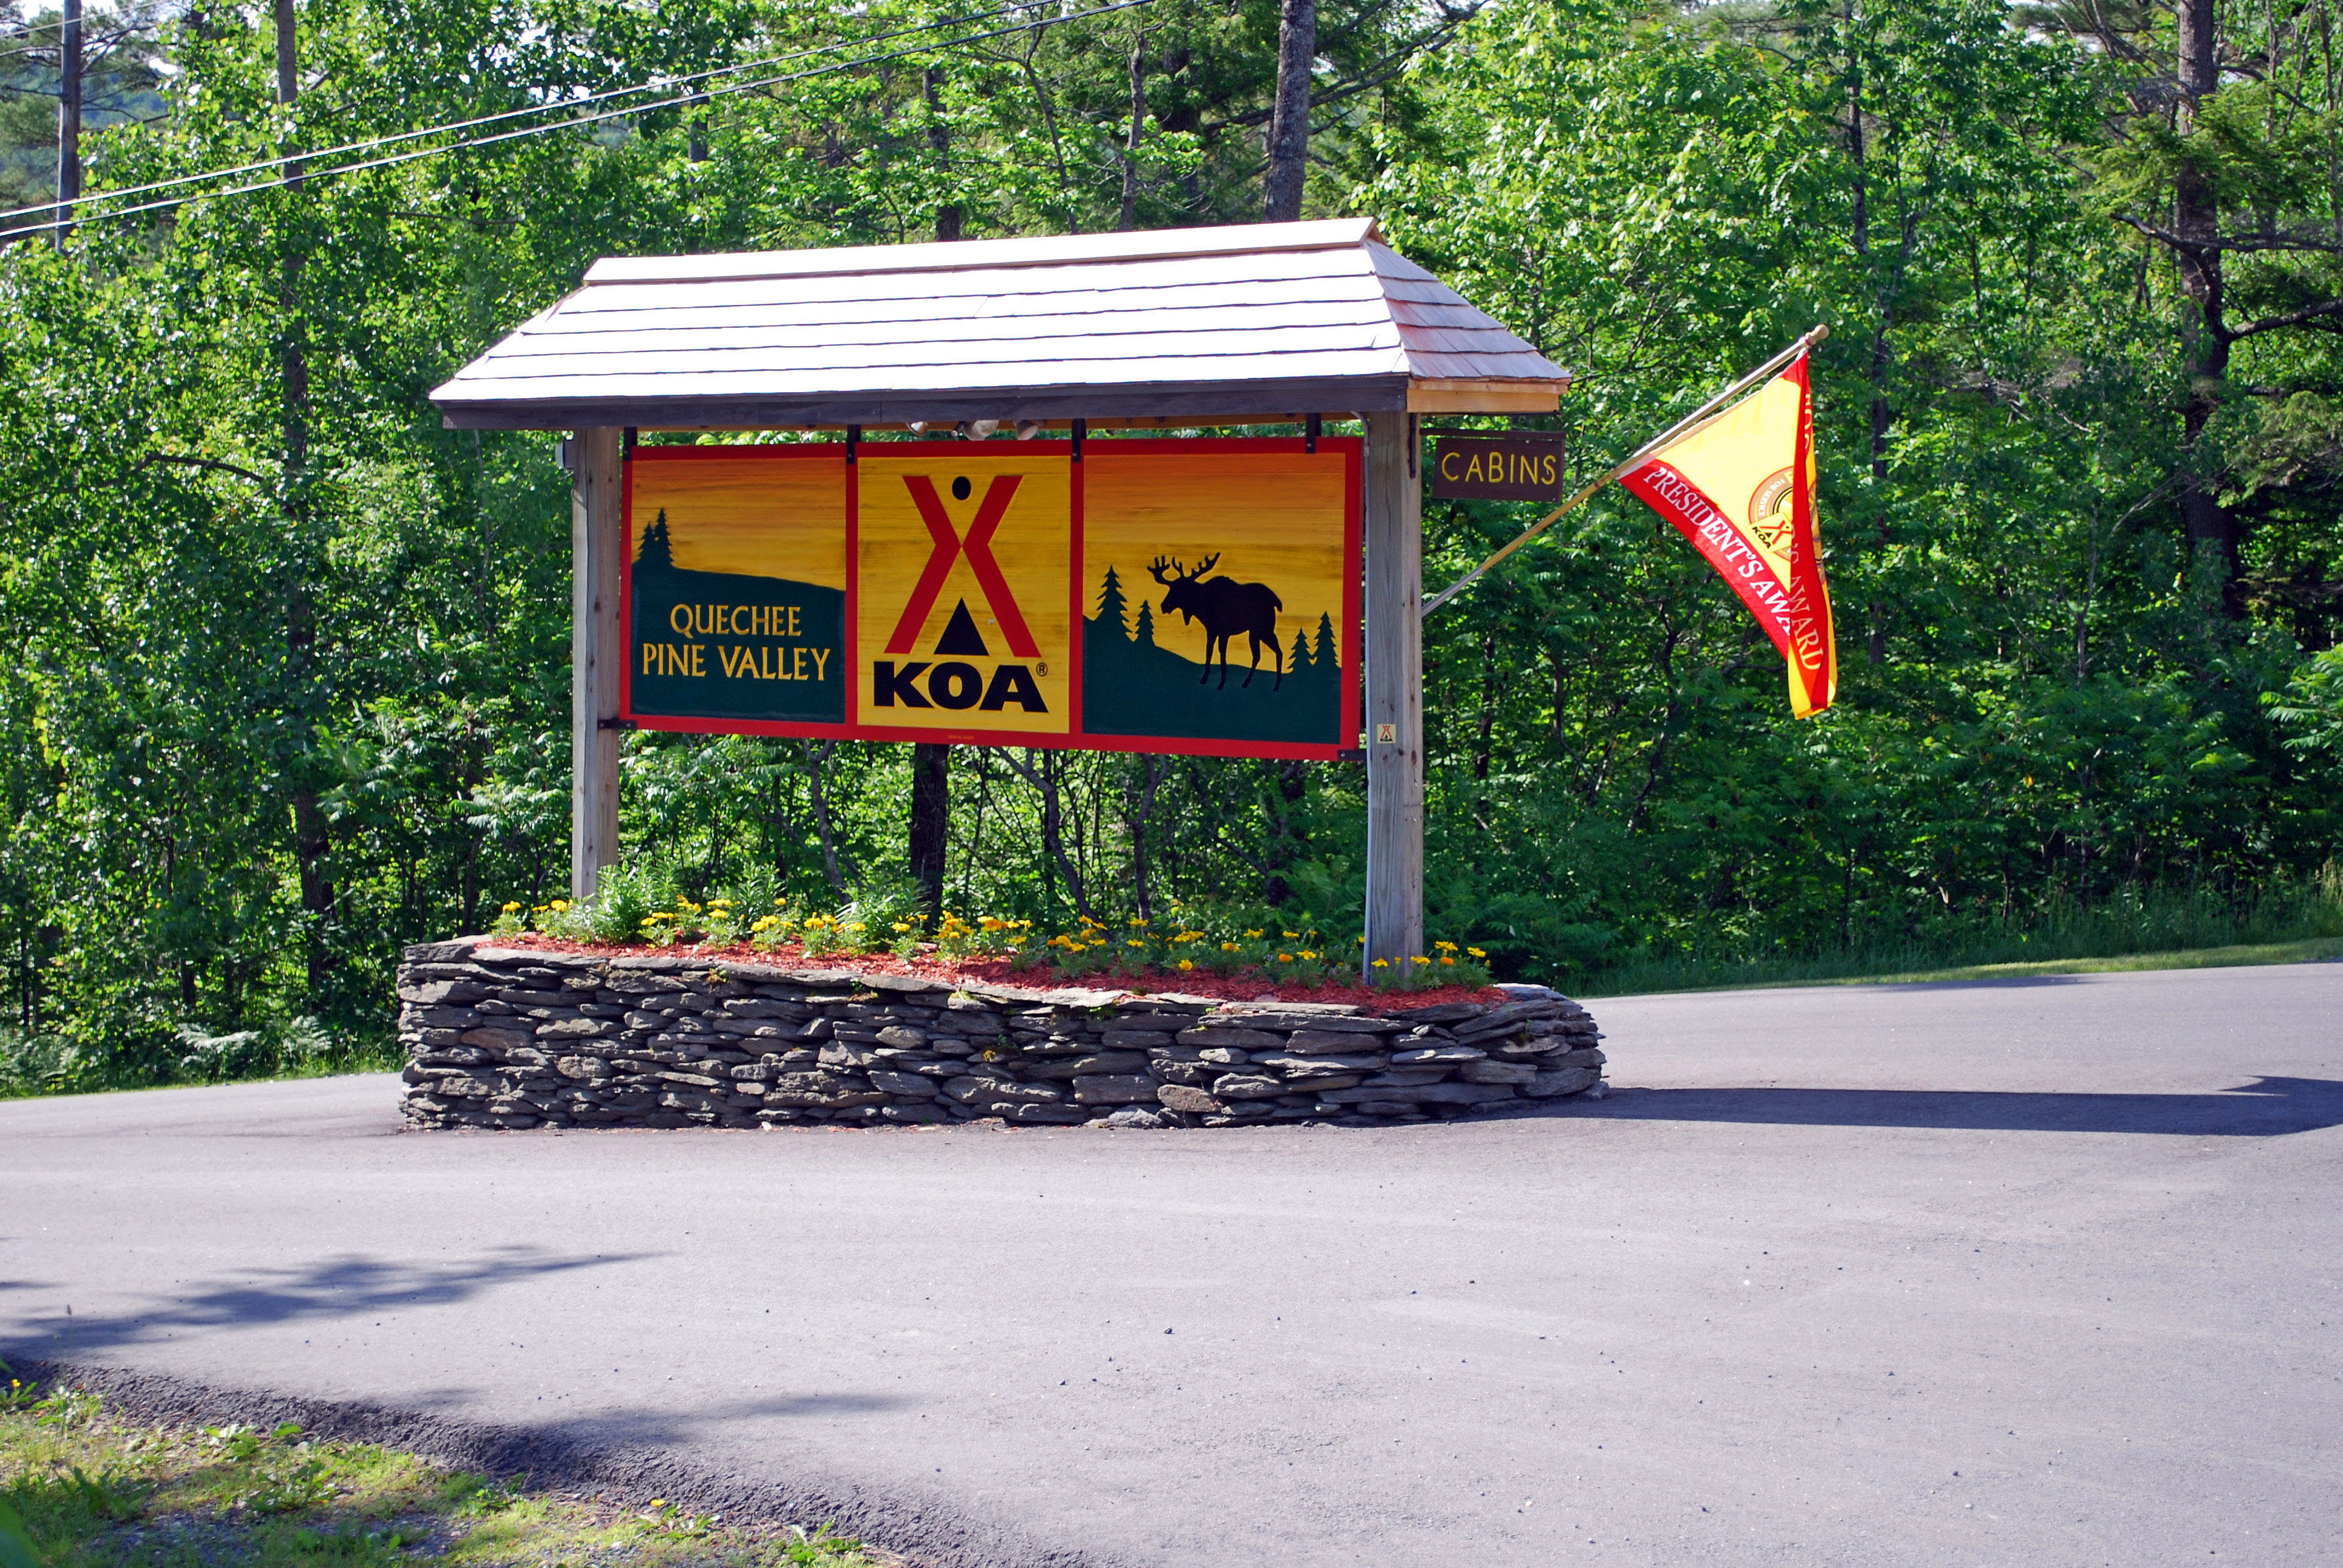 Quechee Pine Valley Koa Holiday White River Junction